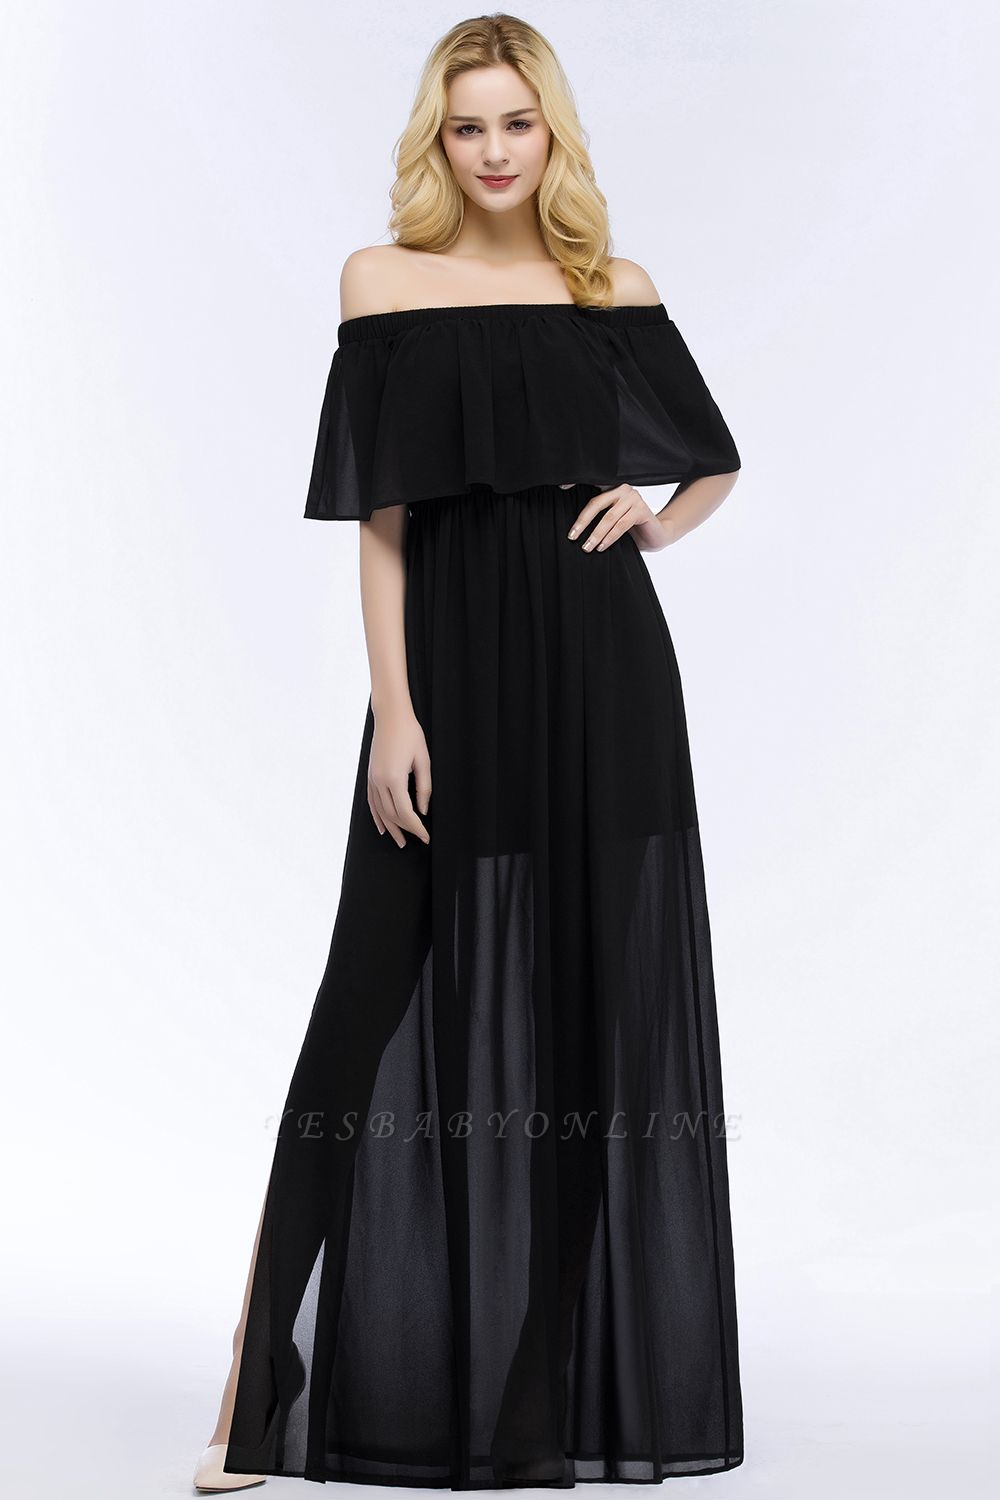 Cheap A-line Off-the-shoulder Floor Length Black Chiffon Bridesmaid Dress in Stock